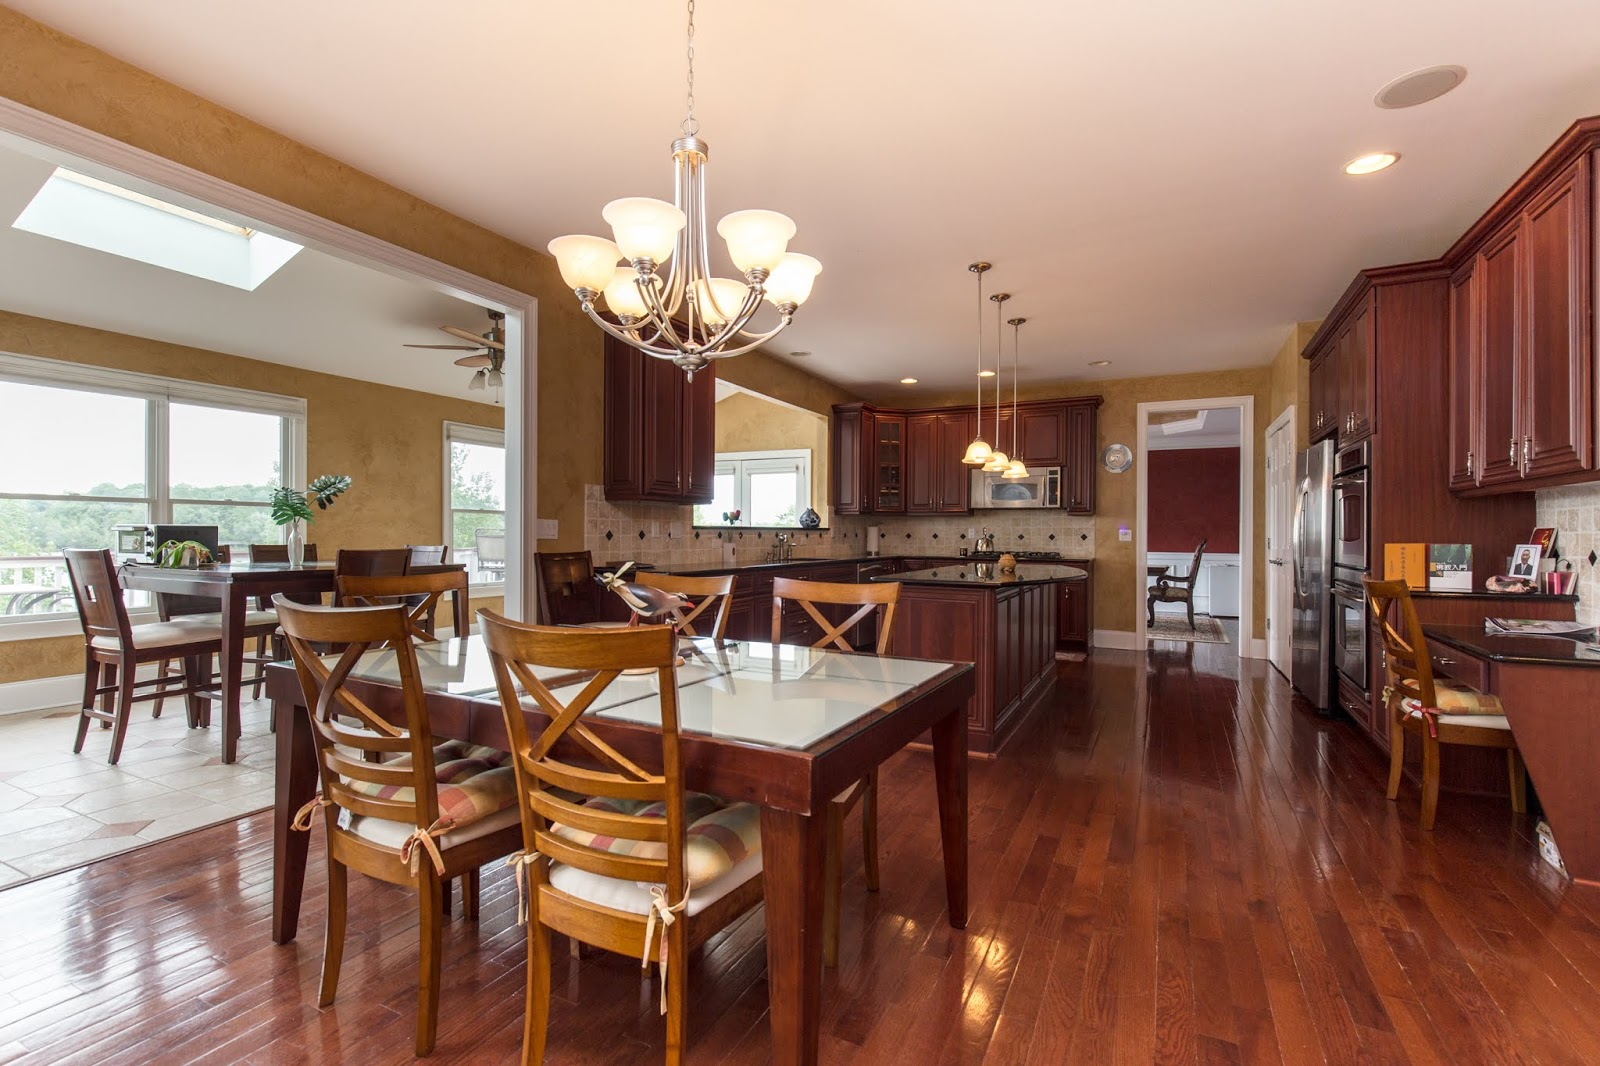 Interior kitchen real estate photographer Northville, Canton, Novi, Farmington Hills, Plymouth